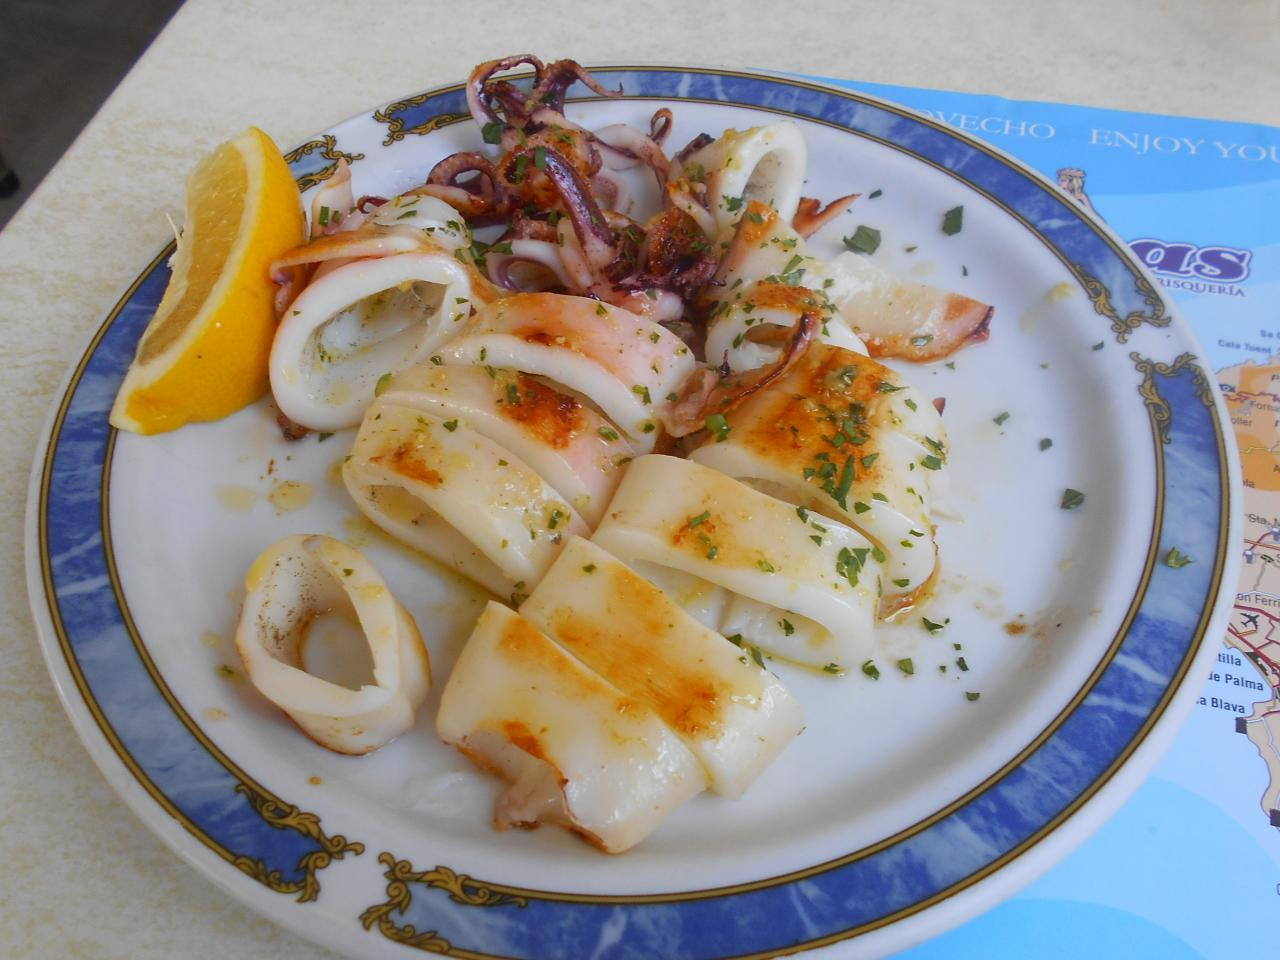 The grilled calamares were nicely chewy